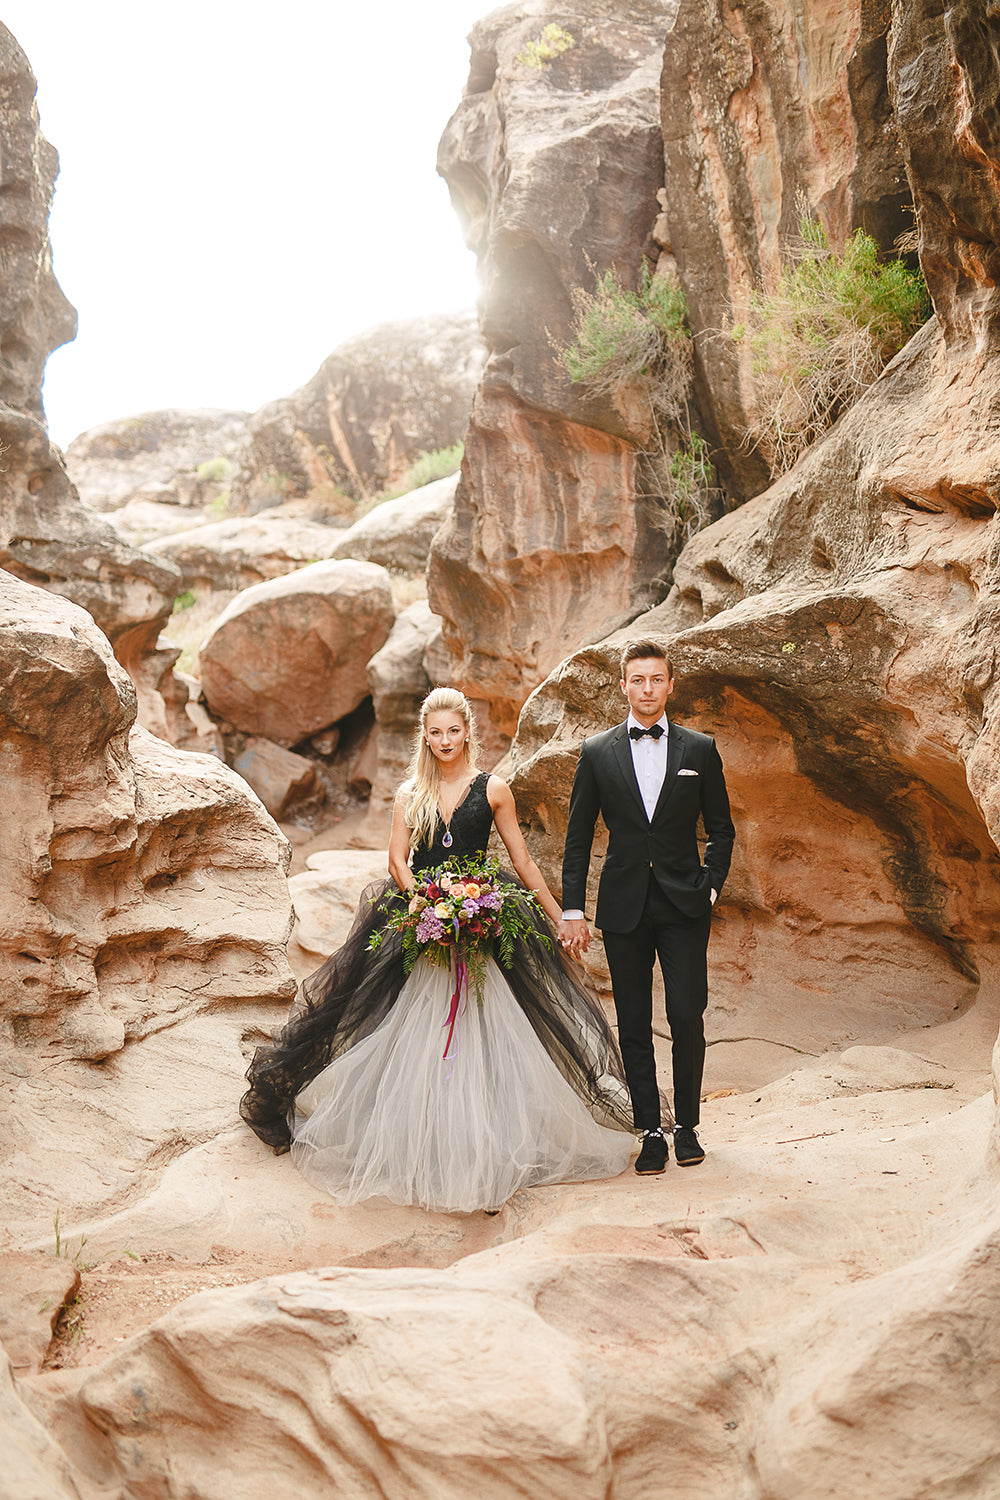 Designer Tulle & Lace Wedding Dress